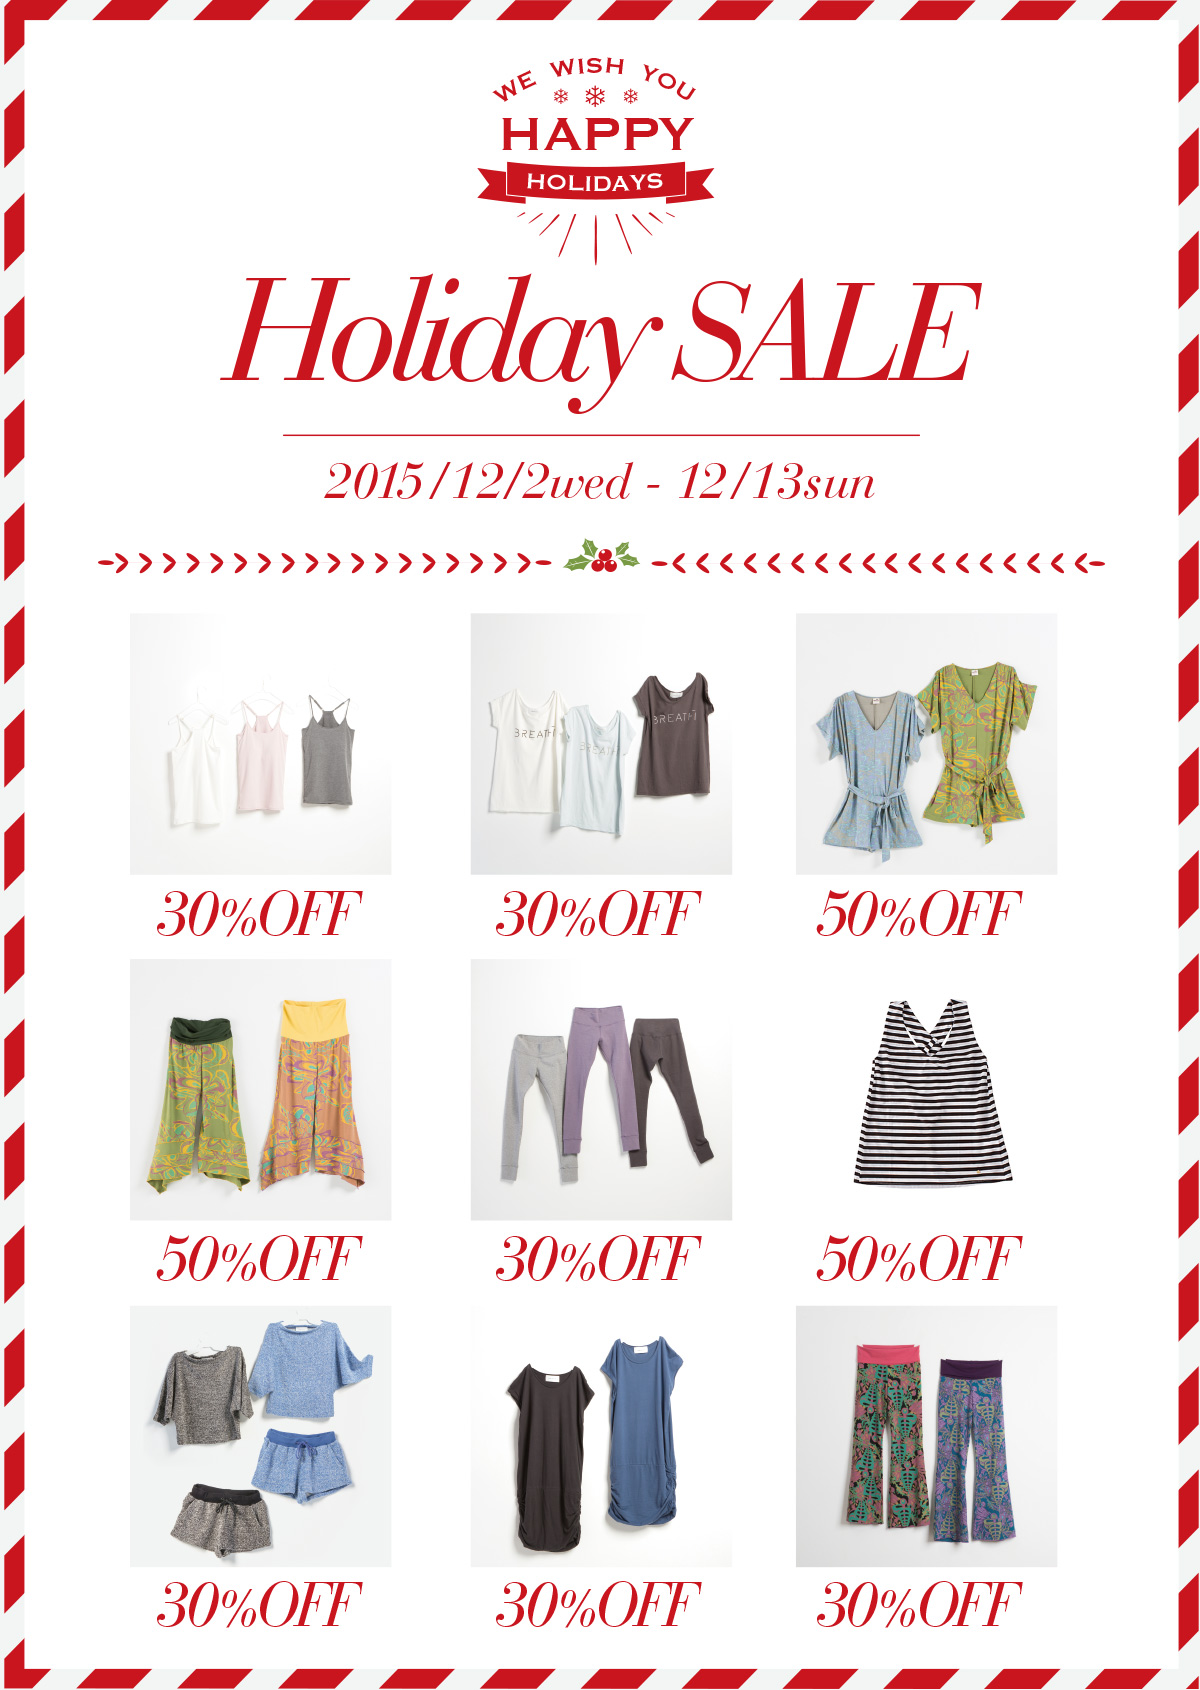 Holiday SALE 2015/12/2wed - 12/13sun